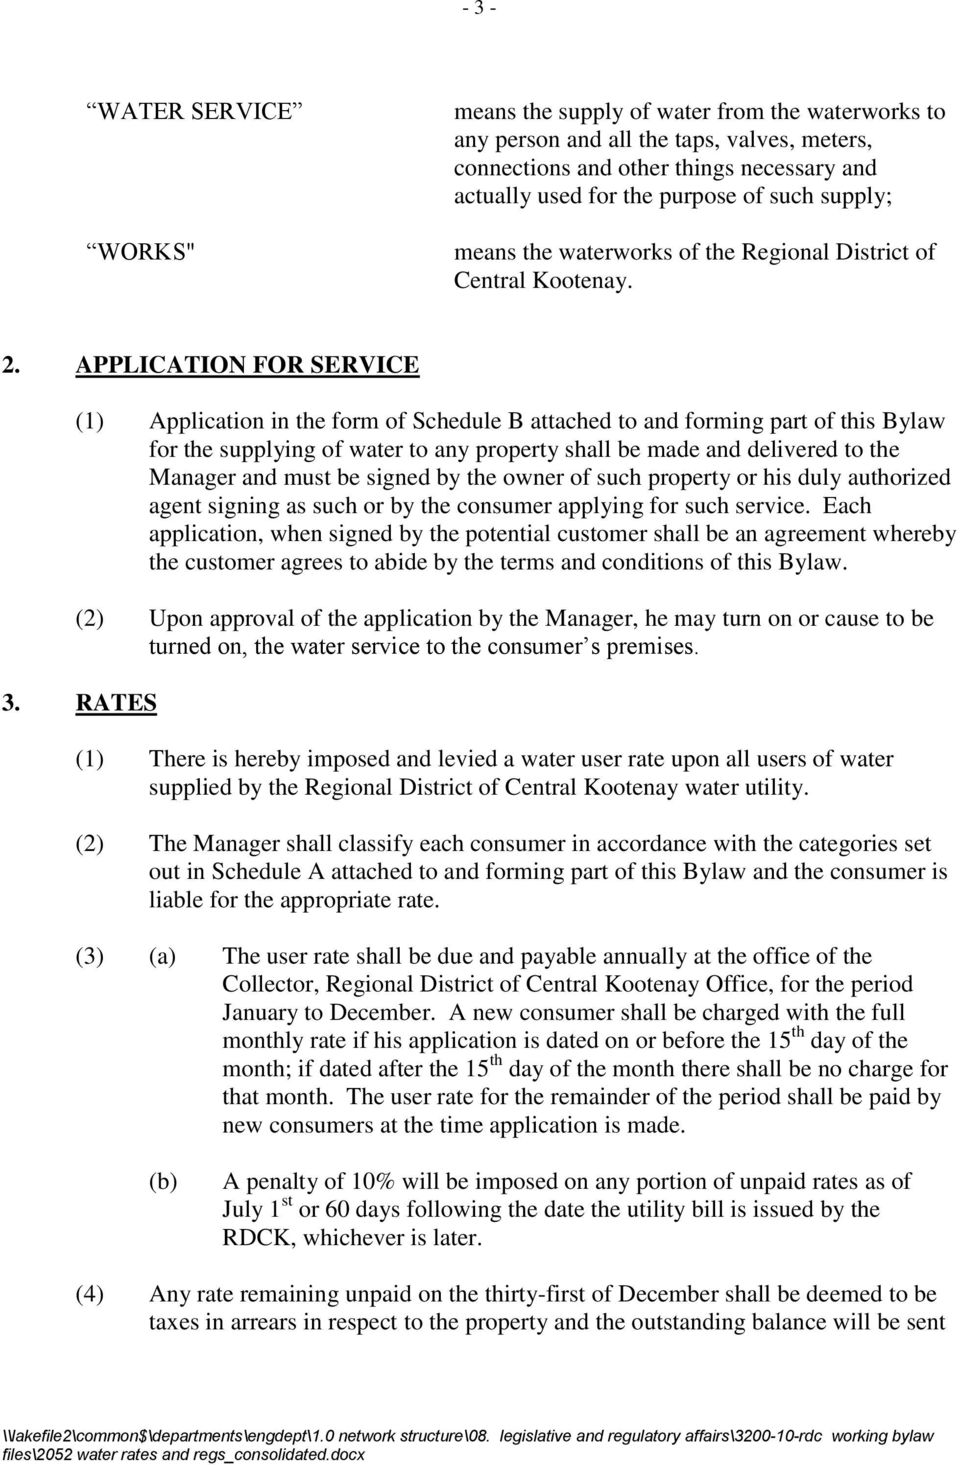 APPLICATION FOR SERVICE (1) Application in the form of Schedule B attached to and forming part of this Bylaw for the supplying of water to any property shall be made and delivered to the Manager and